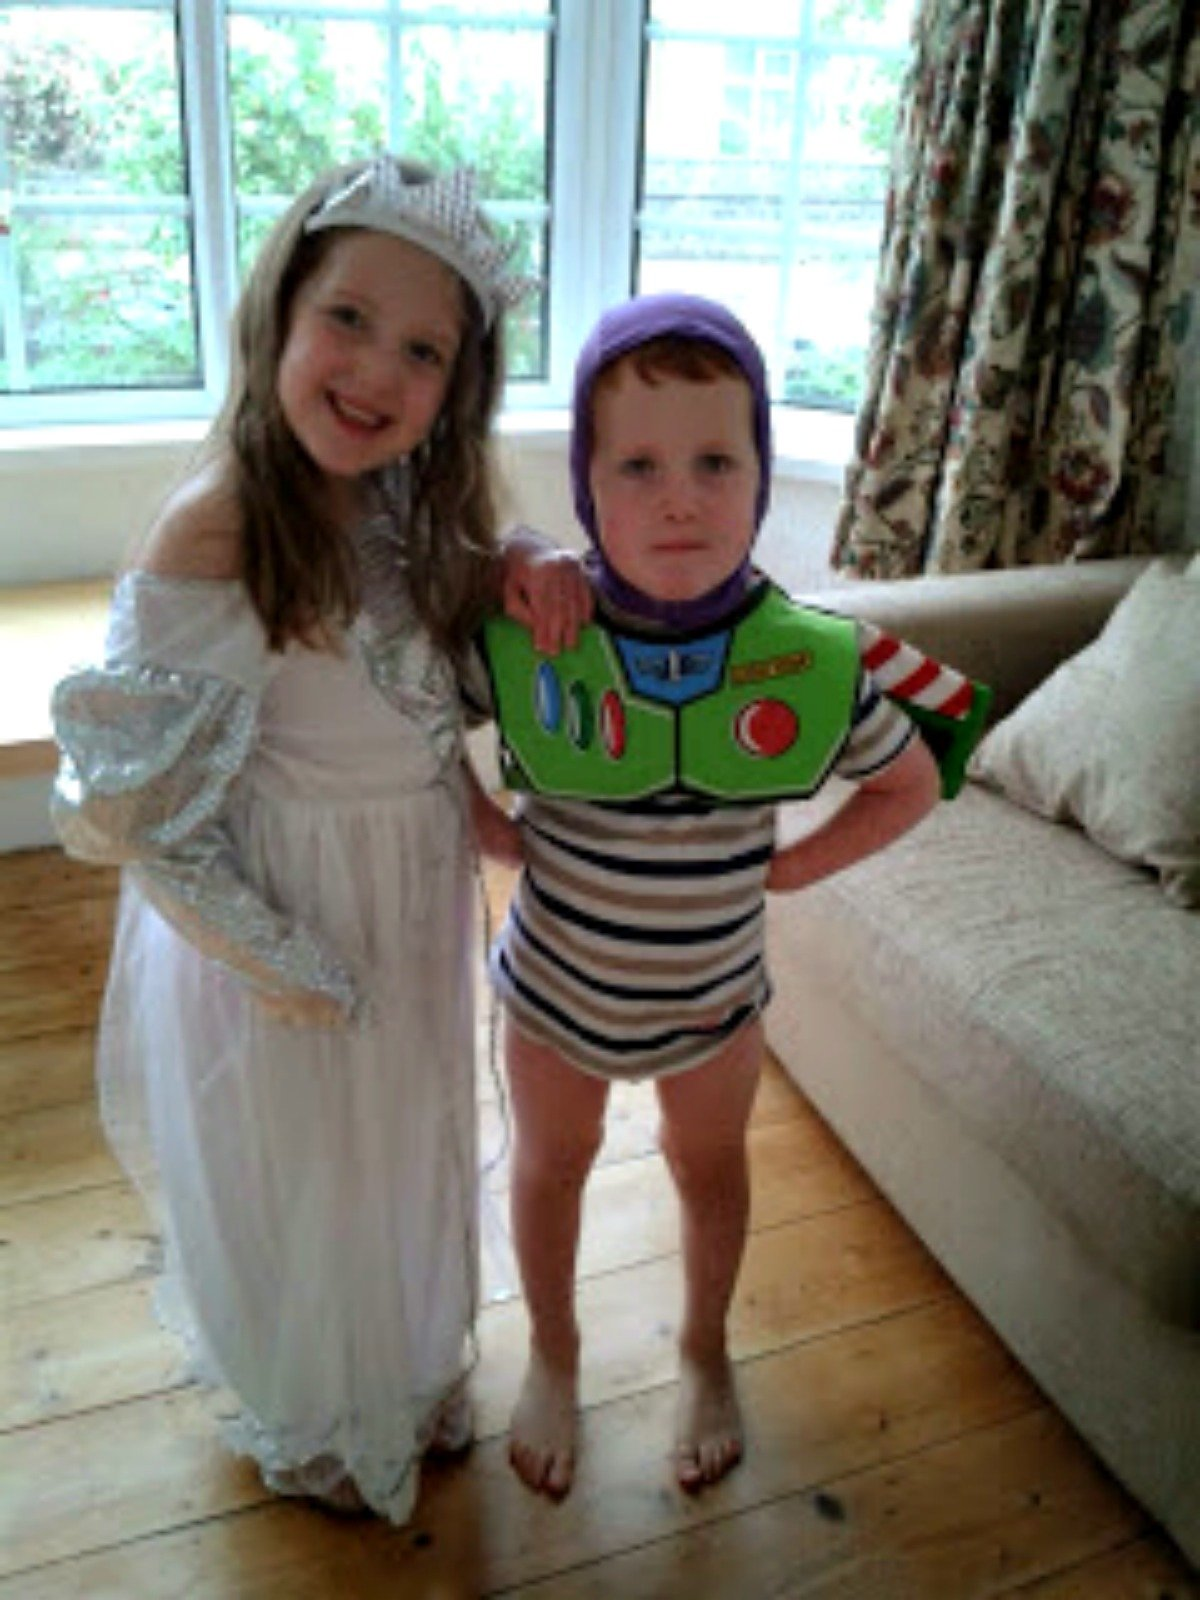 entertaining children - Caitlin as a princess and Ieuan as Buzz Lightyear